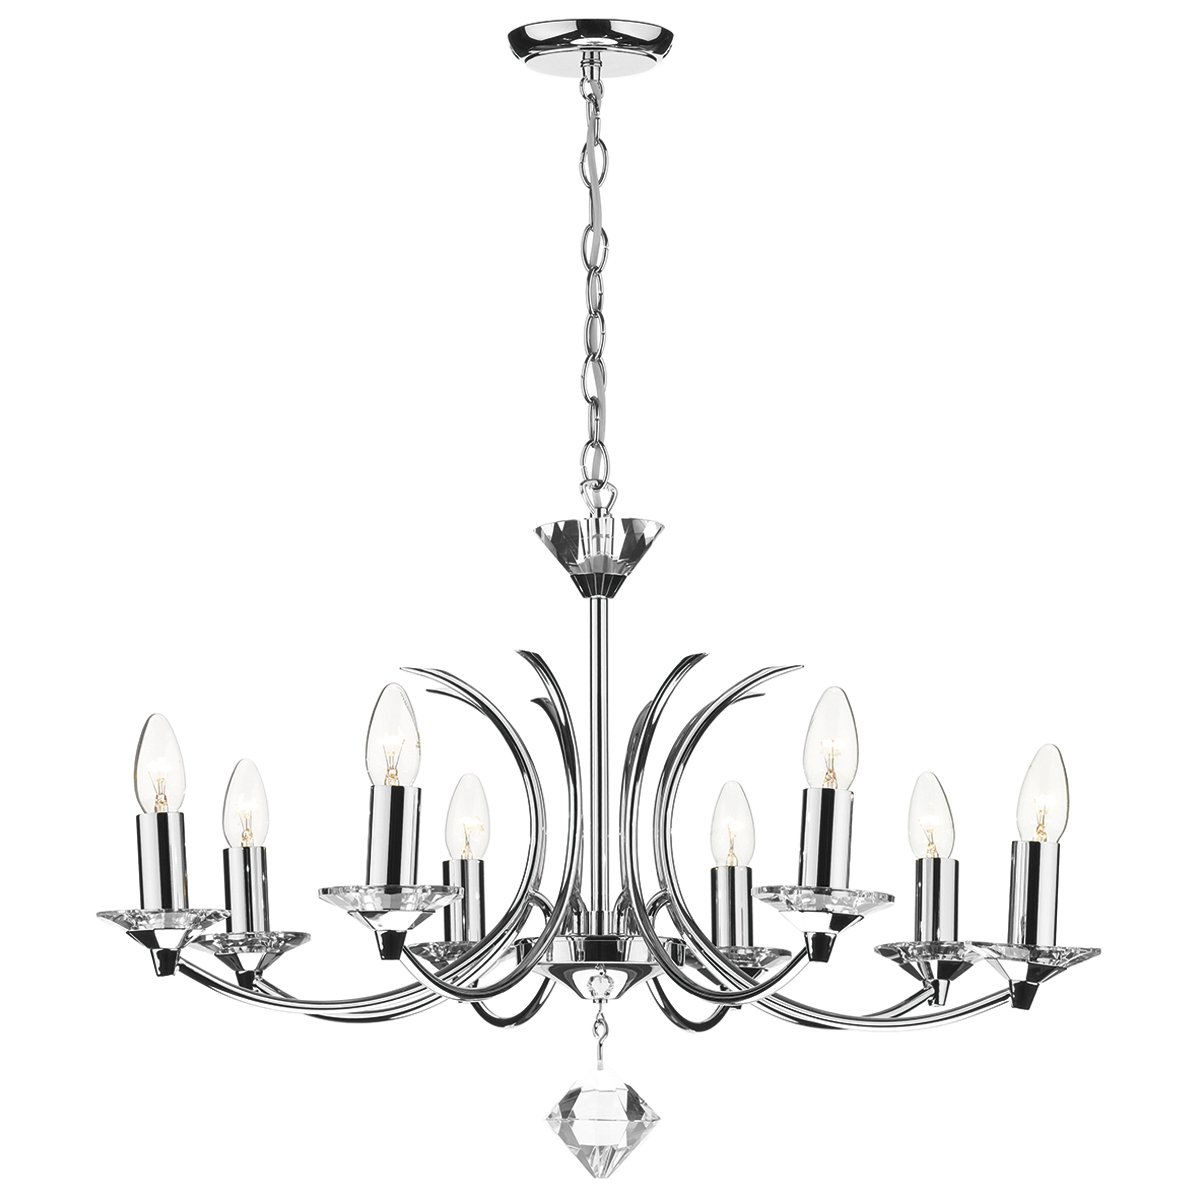 dar medusa 8 light dual mount pendant k9 crystal polished chrome at barnitts online store  uk